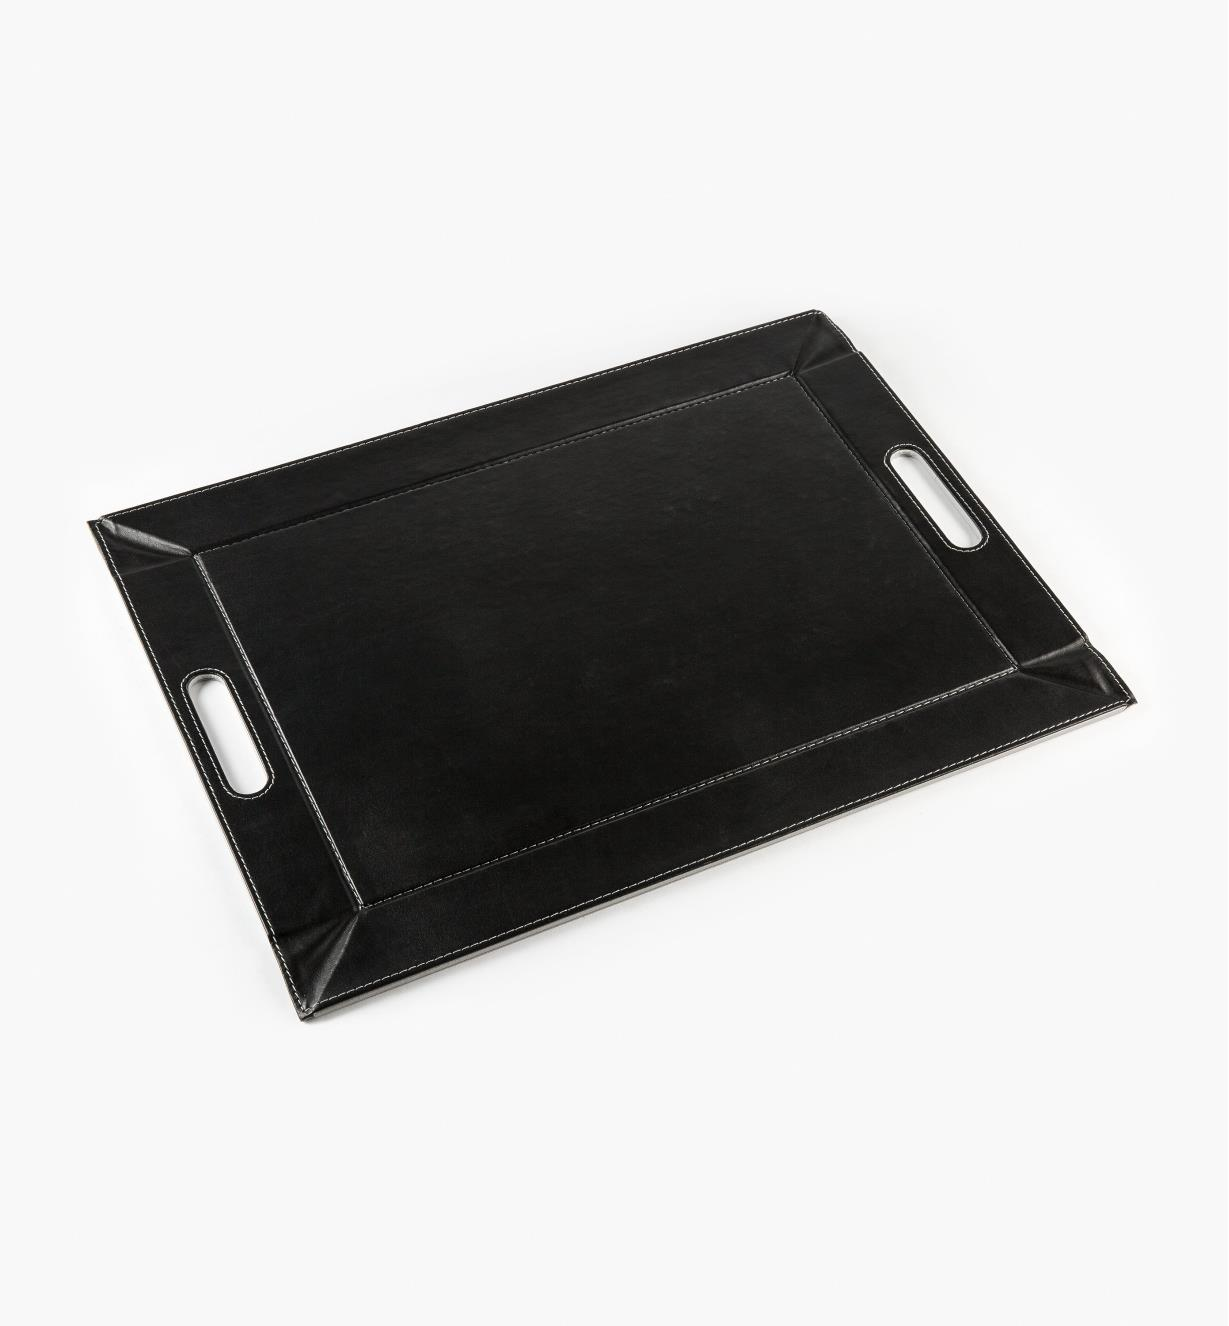 "GB521 - 18"" x 12"" x 2"" FreeForm Folding Tray"